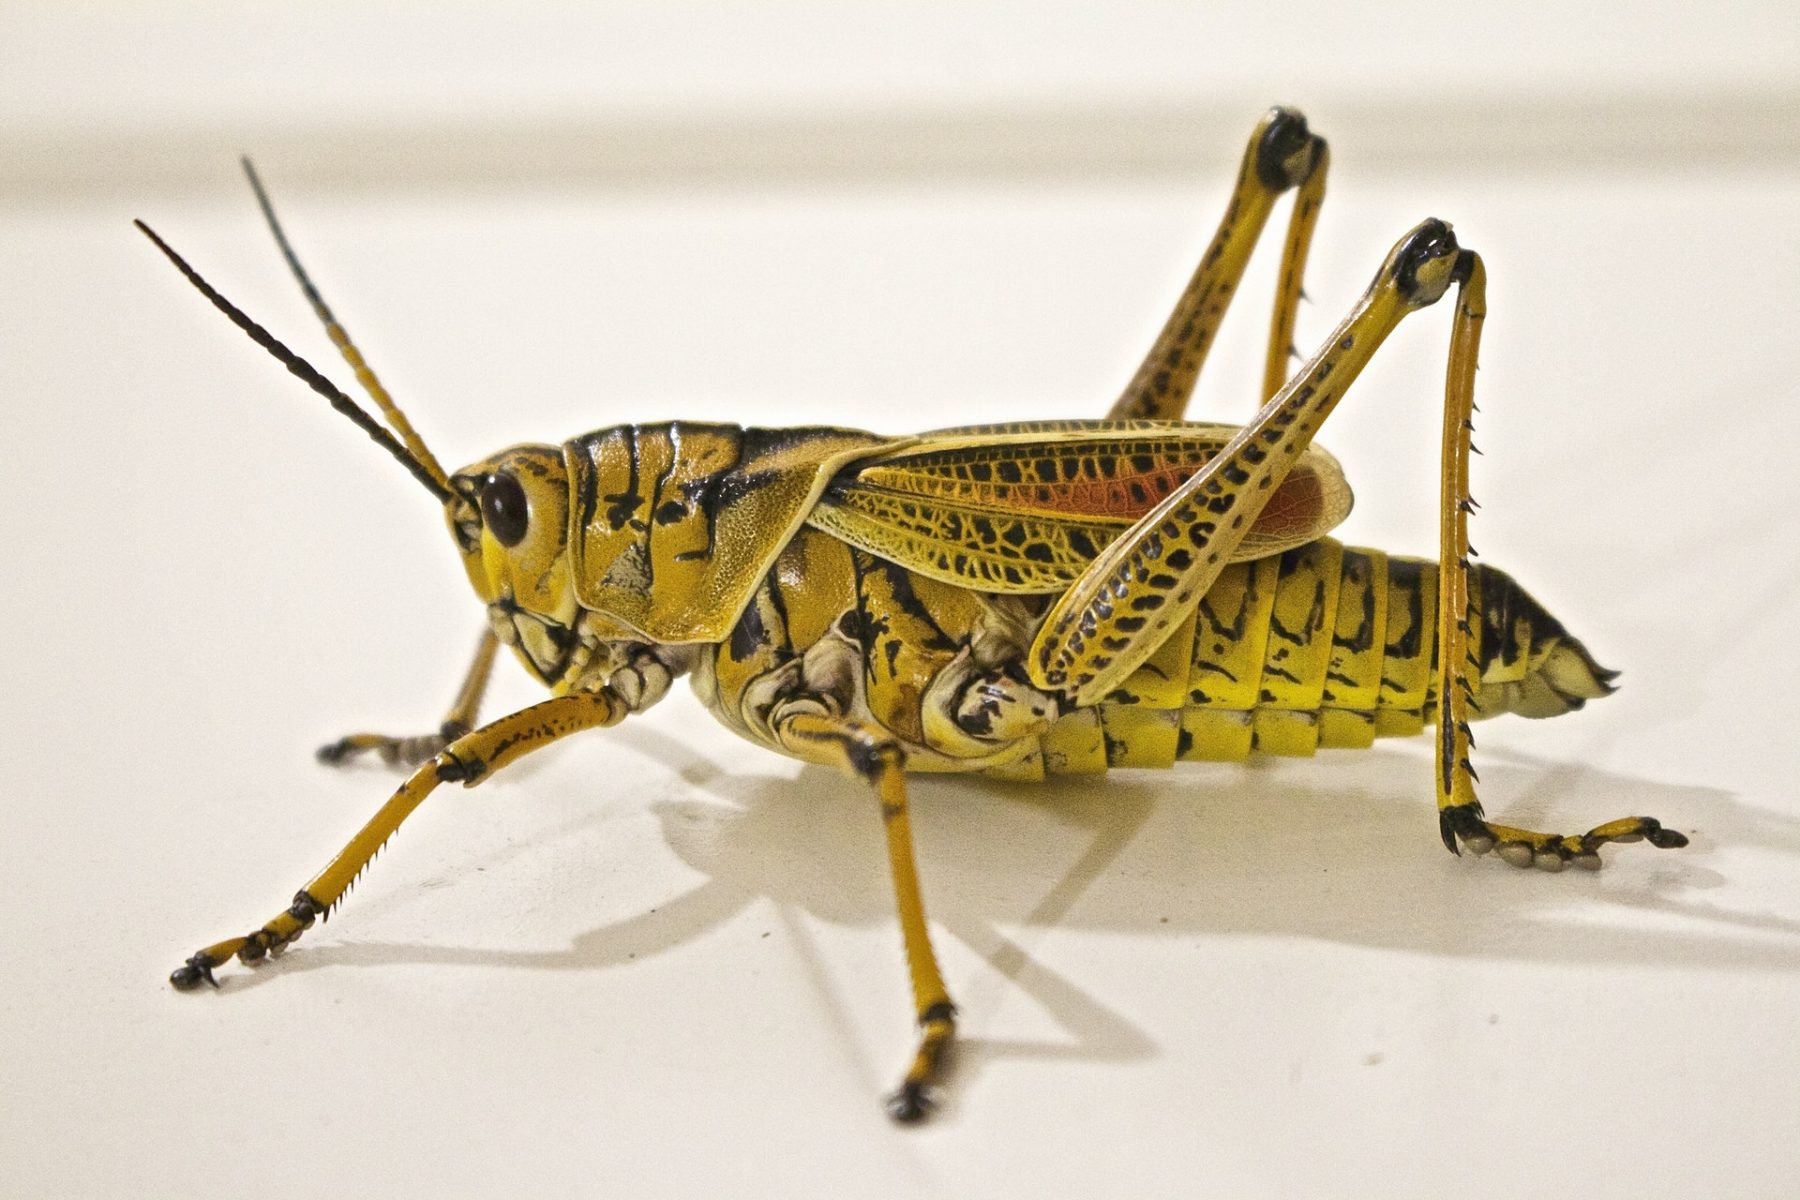 When does a grasshopper pounce on your company?